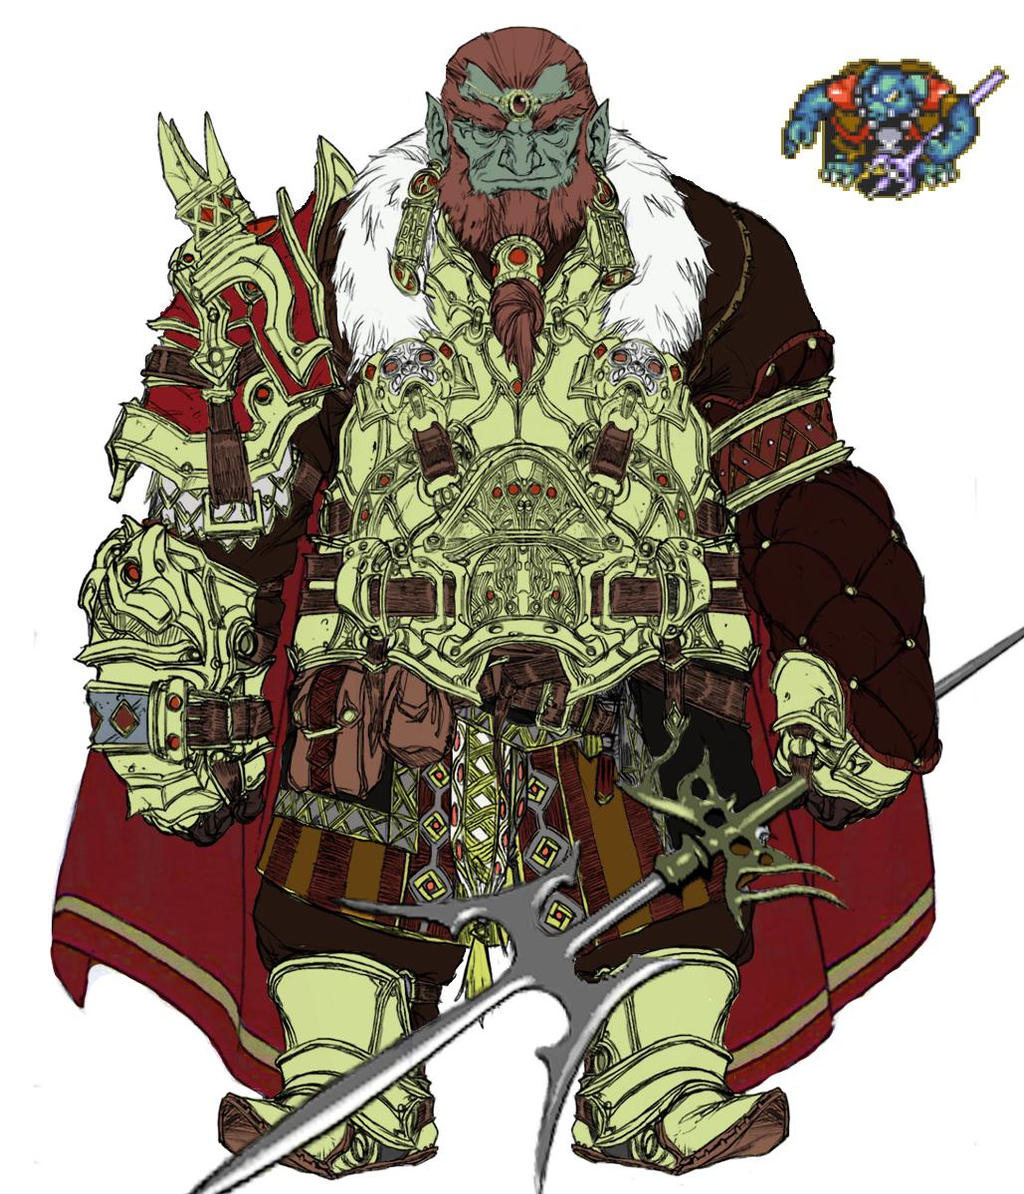 Ganondorf A Link To The Past By Womack90 On Deviantart